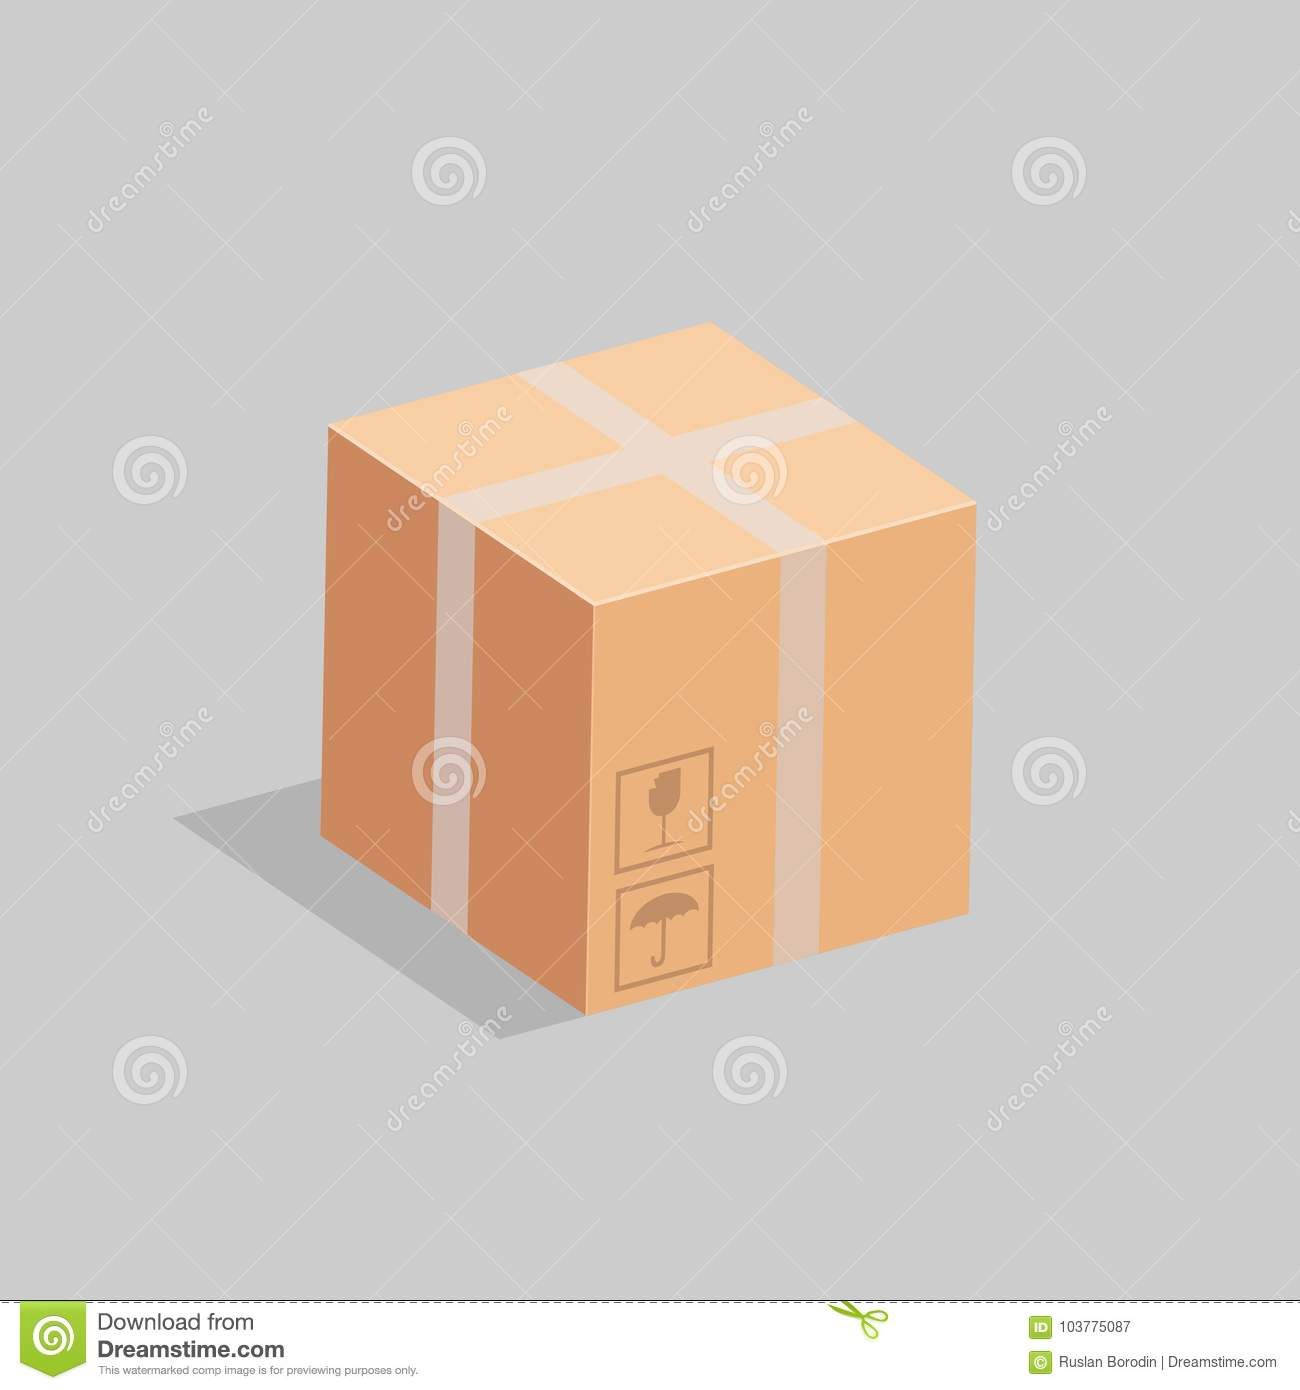 A cardboard box which packing labels . Vector illustration.